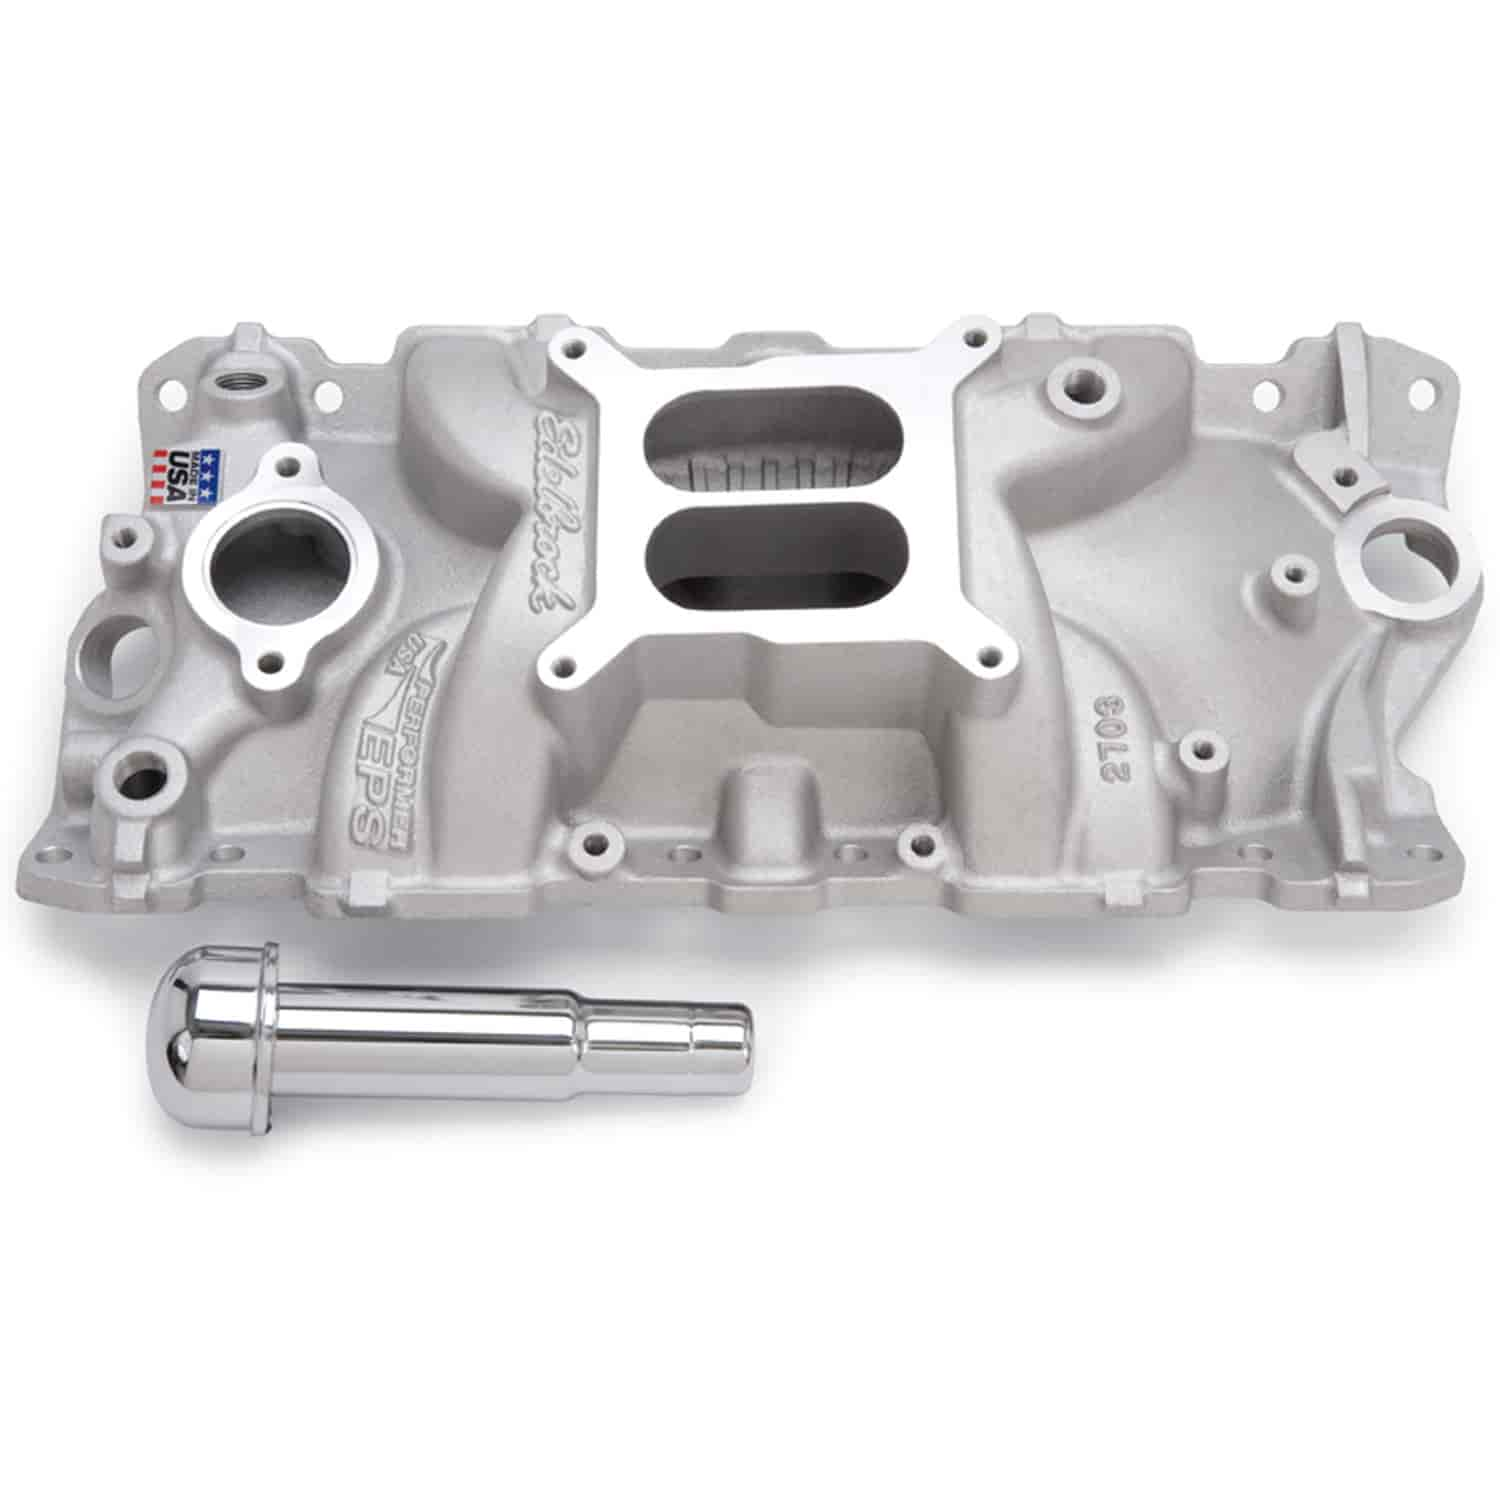 Edelbrock 2703: Performer EPS Intake Manifold For SBC With